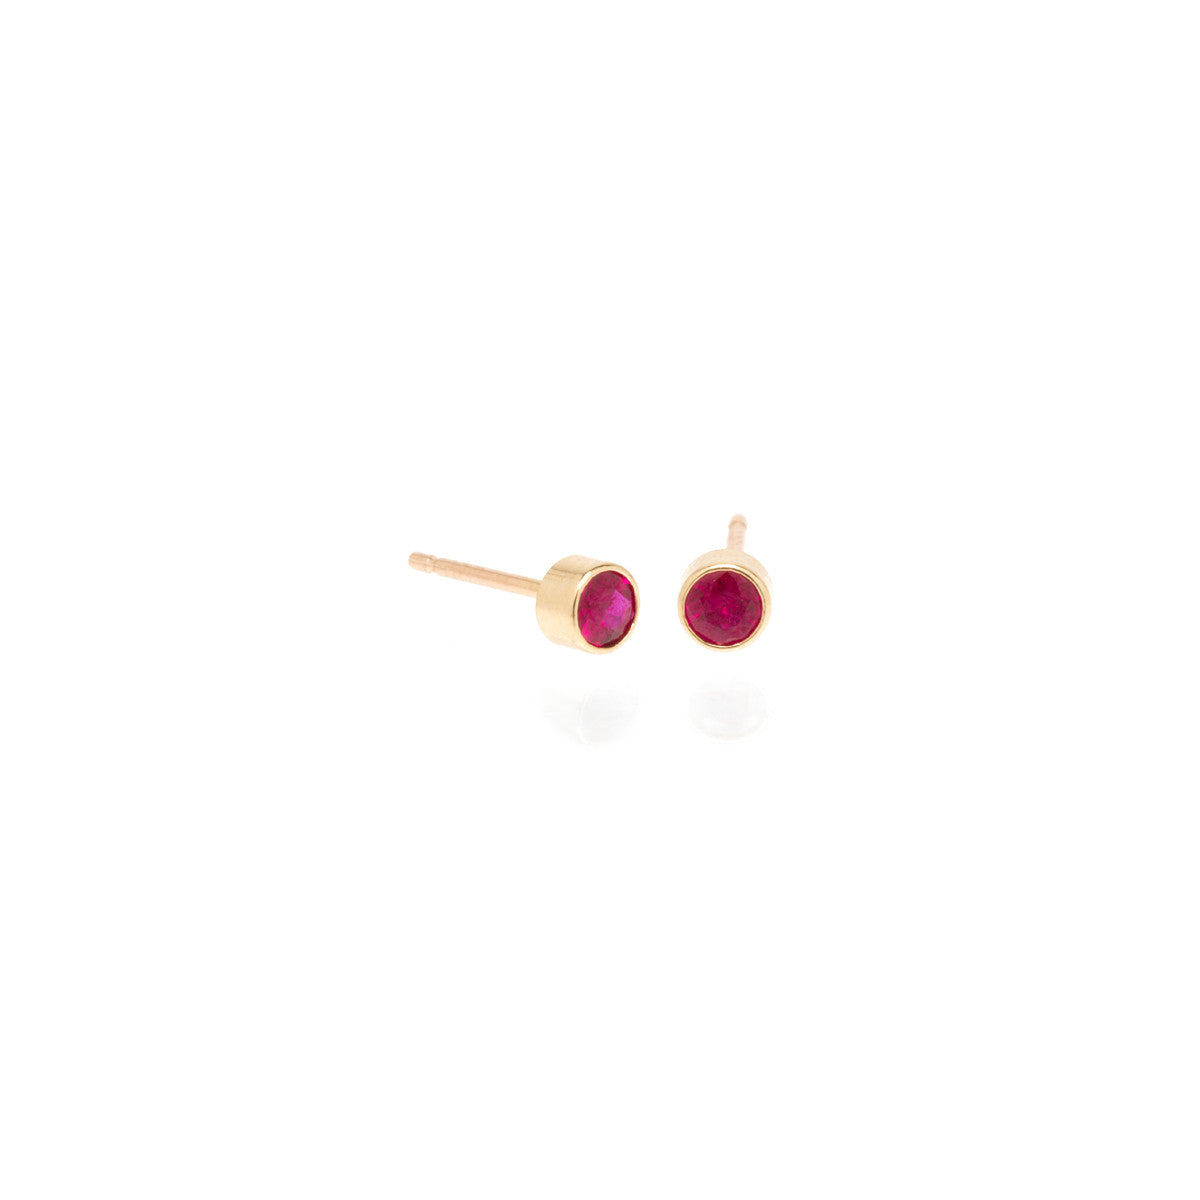 Zoë Chicco 14kt Yellow Gold Ruby Stud Earrings